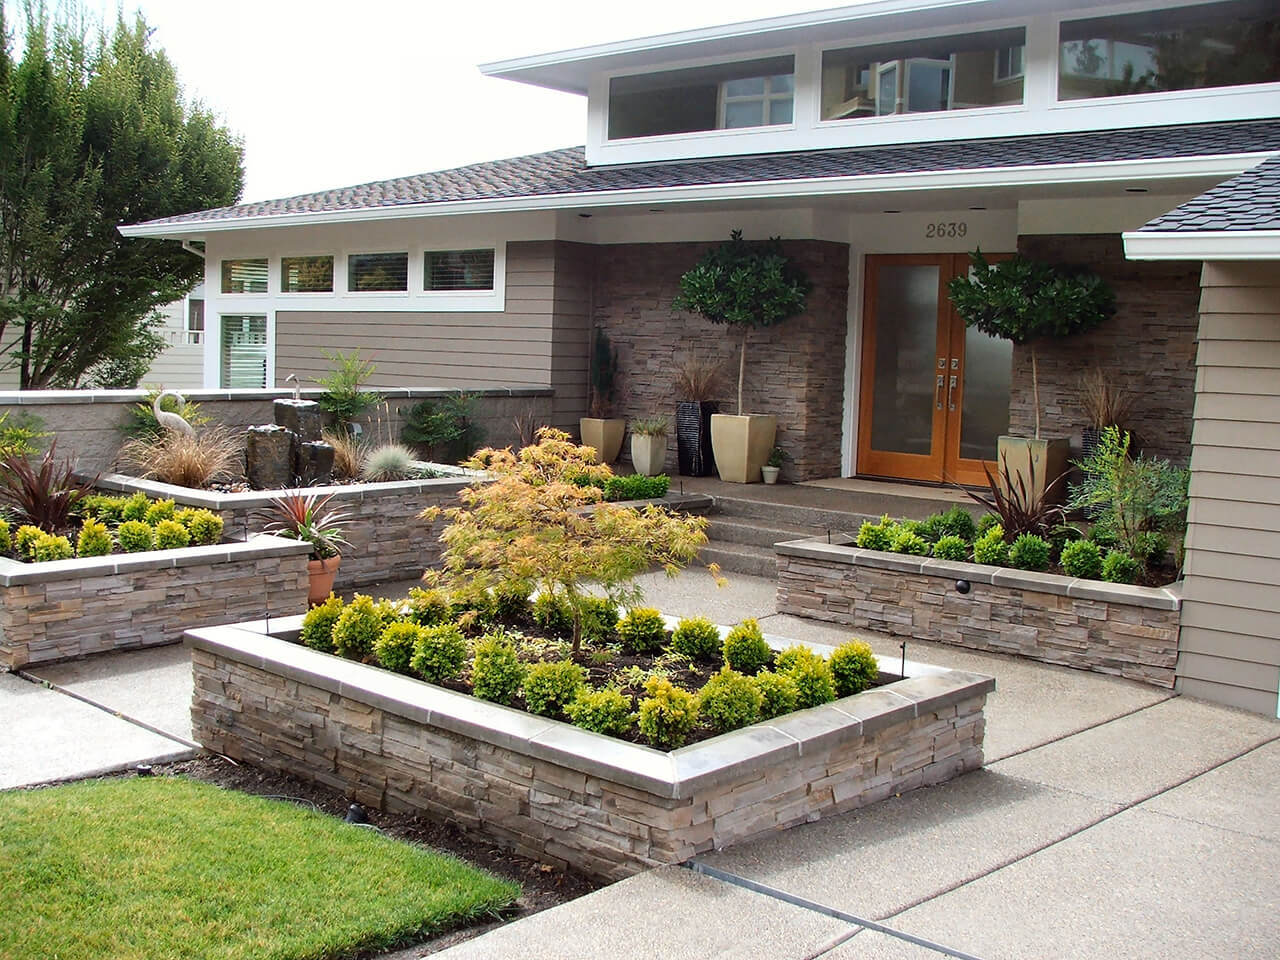 50 Best Front Yard Landscaping Ideas and Garden Designs ... on Best Backyard Landscaping id=61344